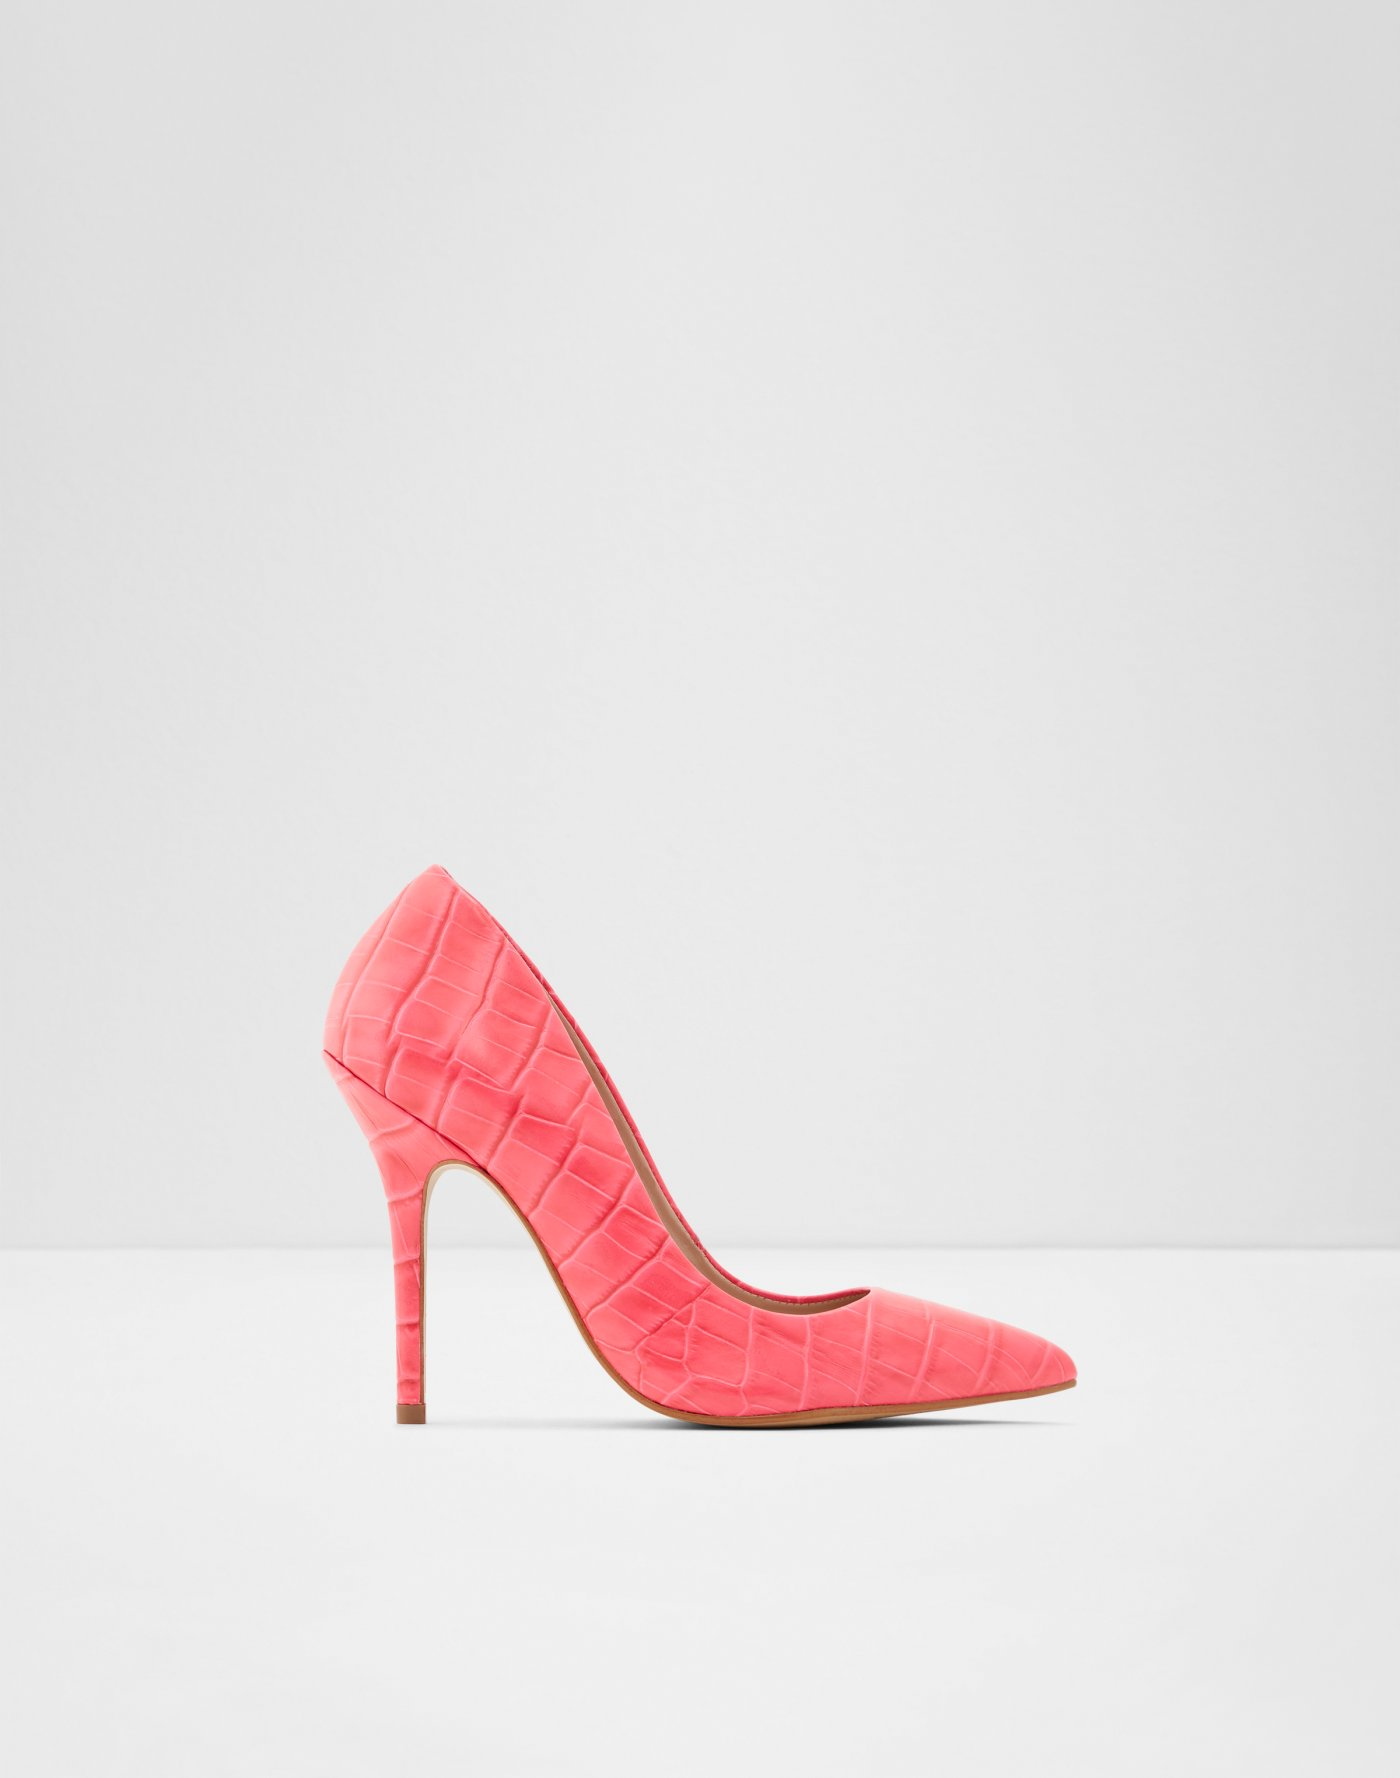 3e061bf55ac56 Women's Heels | Black, Red, Nude, Silver Heels | ALDO US | Aldoshoes ...